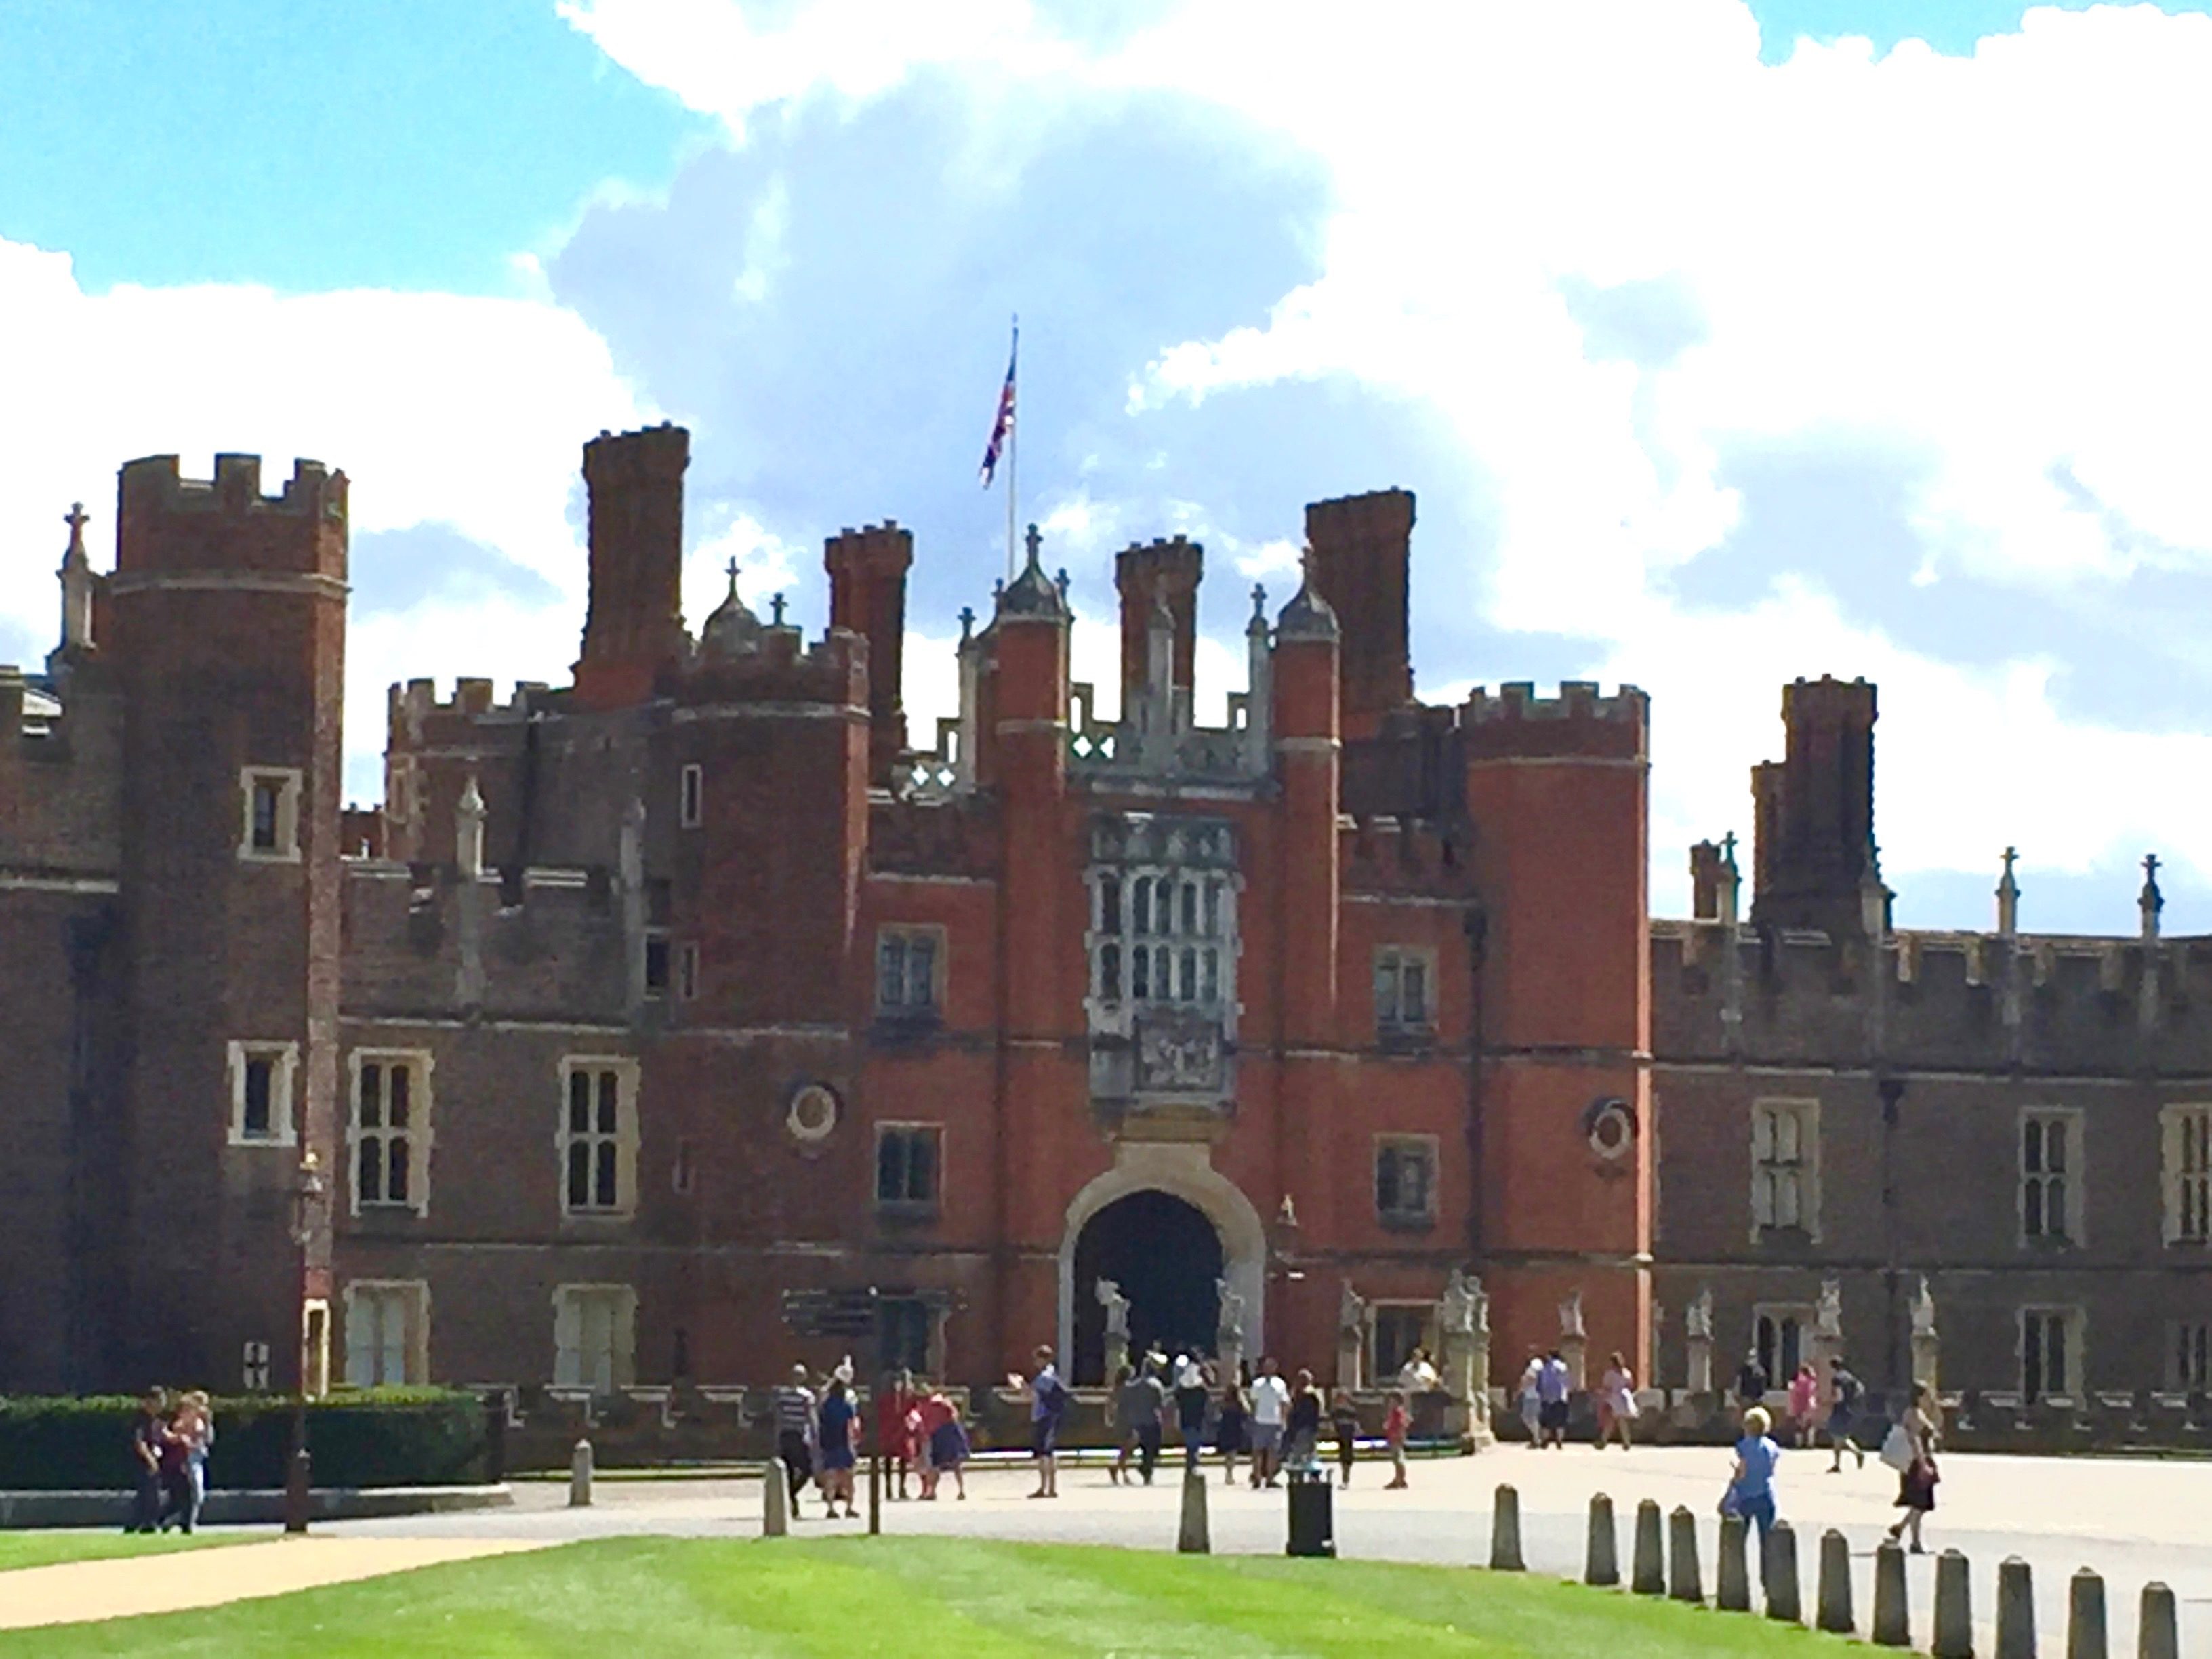 A visit to Hampton Court Palace by riverboat from Richmond